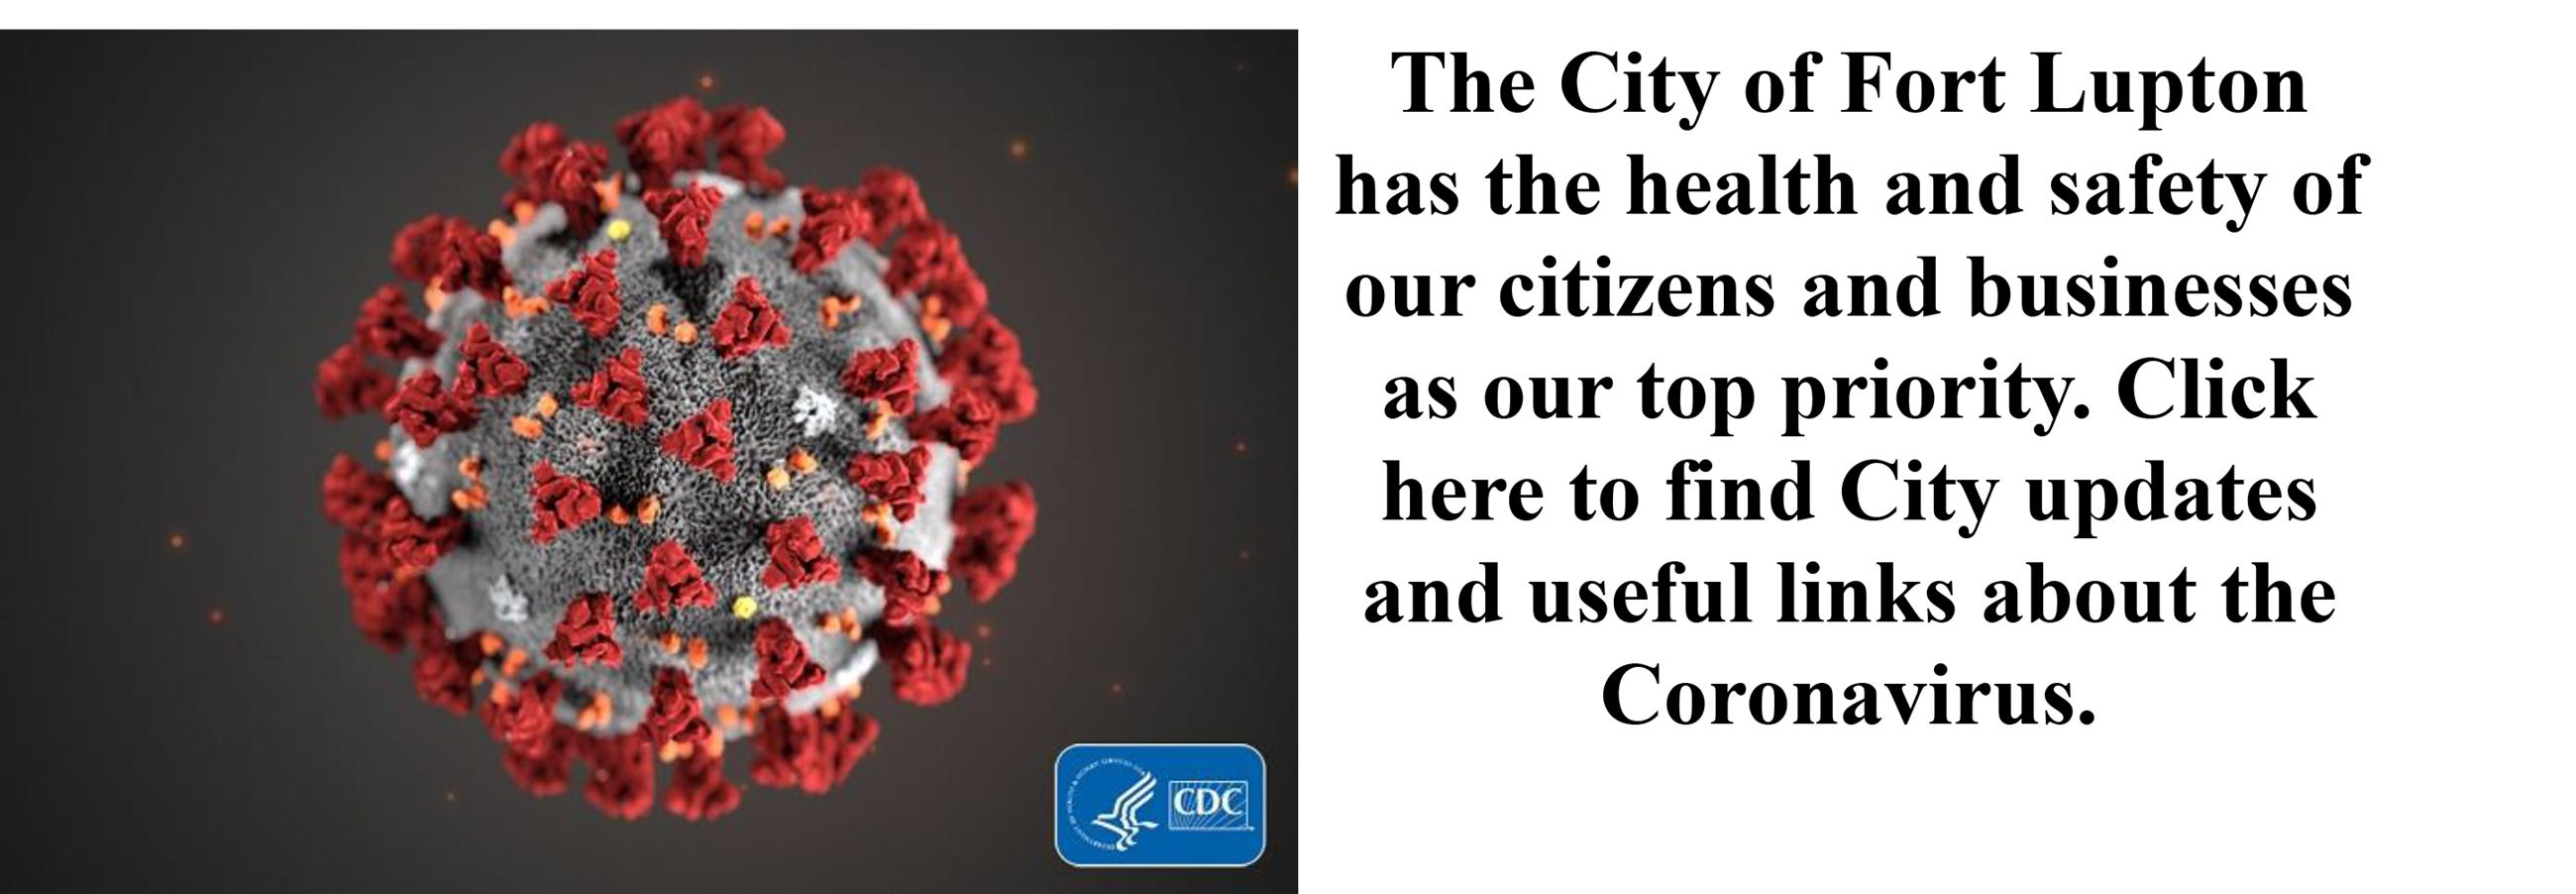 The City of Fort Lupton has the health and safety of our citizens and businesses as our top priority